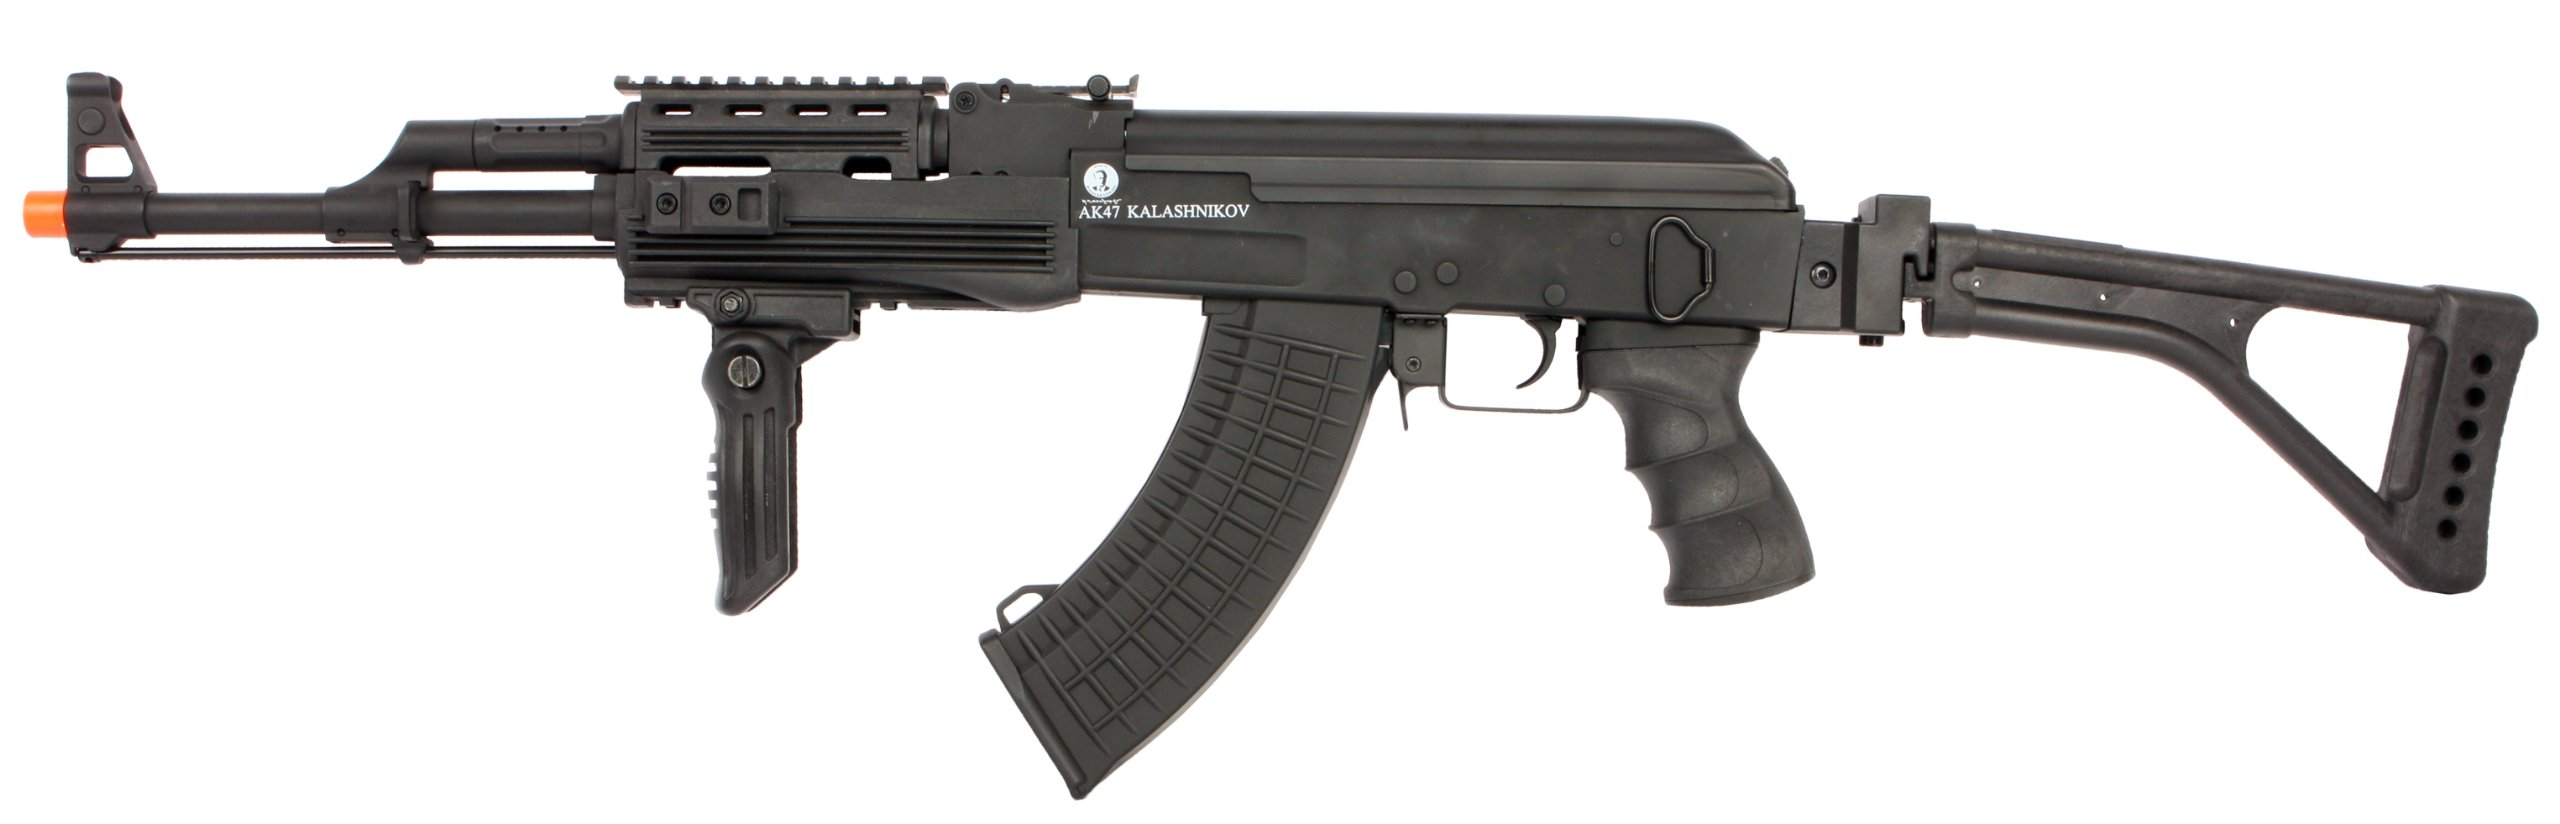 Soft Air Kalishnikov AK47 Rifle de Airsoft de metal completo eléctrico con salto ajustable, 390-430 FPS